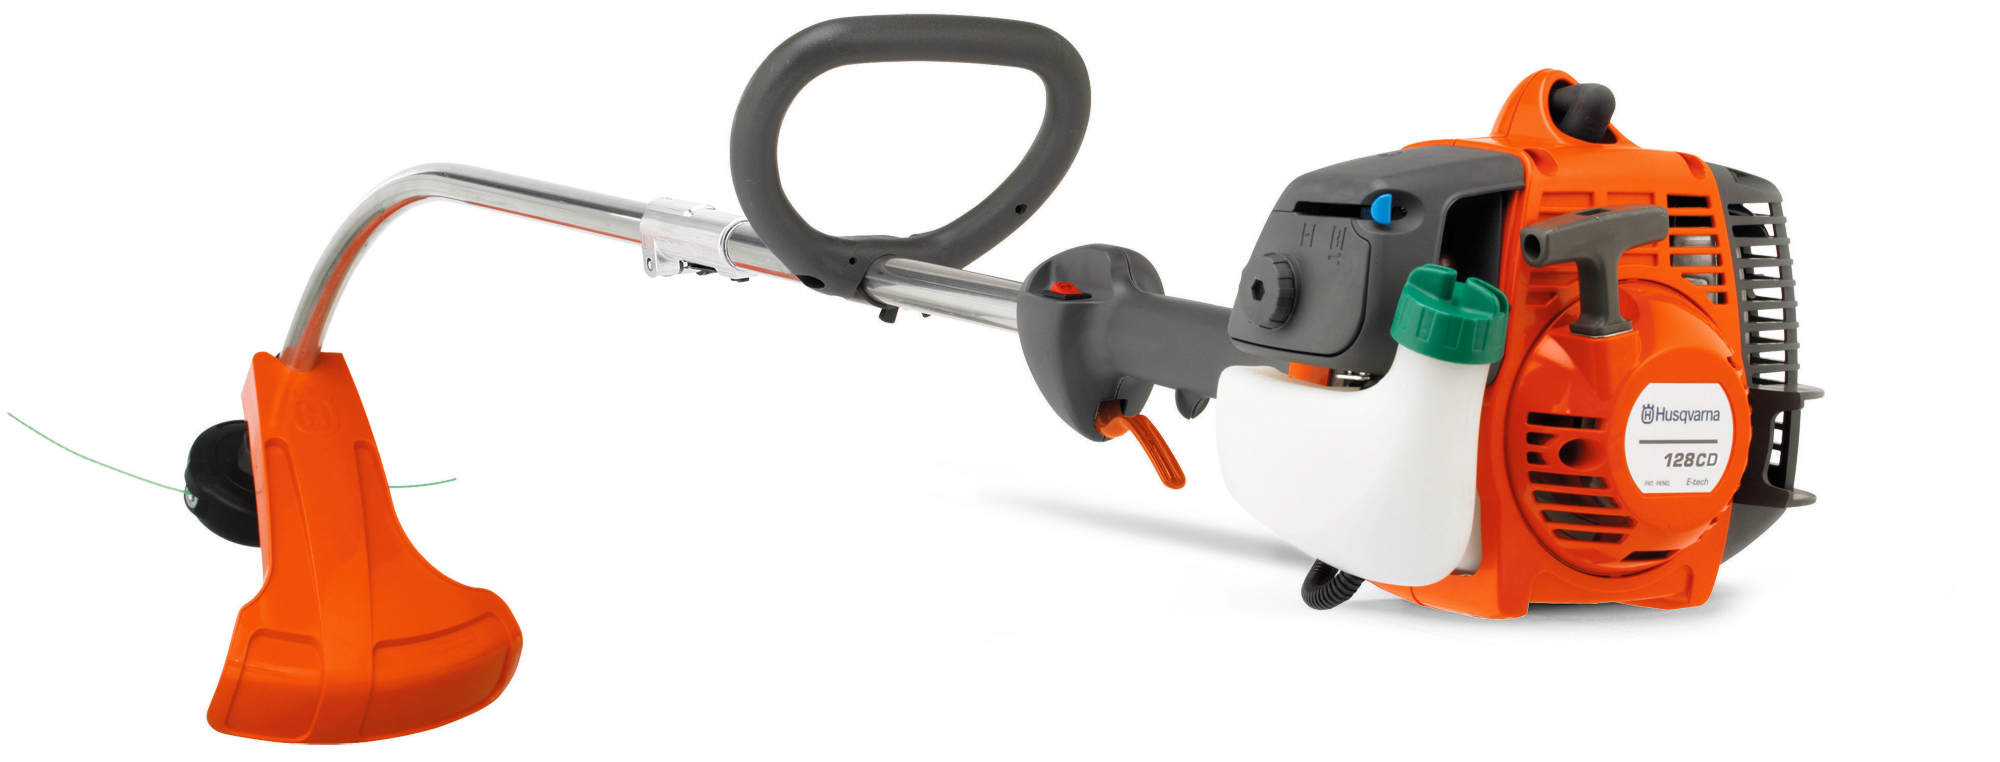 Image for 128CD Gas Curved Shaft String Trimmer                                                                                            from HusqvarnaB2C